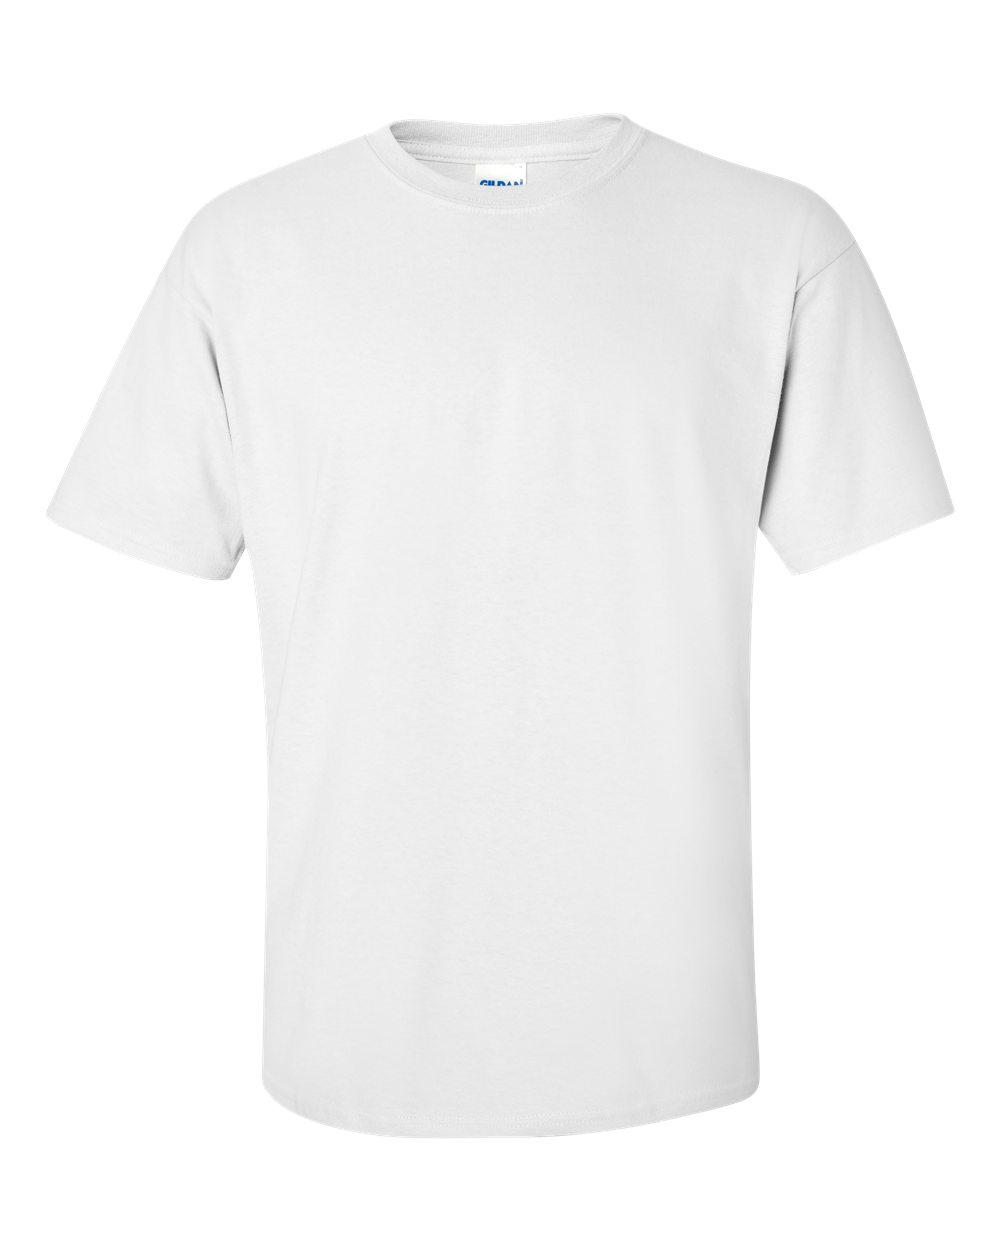 50 custom printed white t shirts on storenvy for White t shirt template front and back